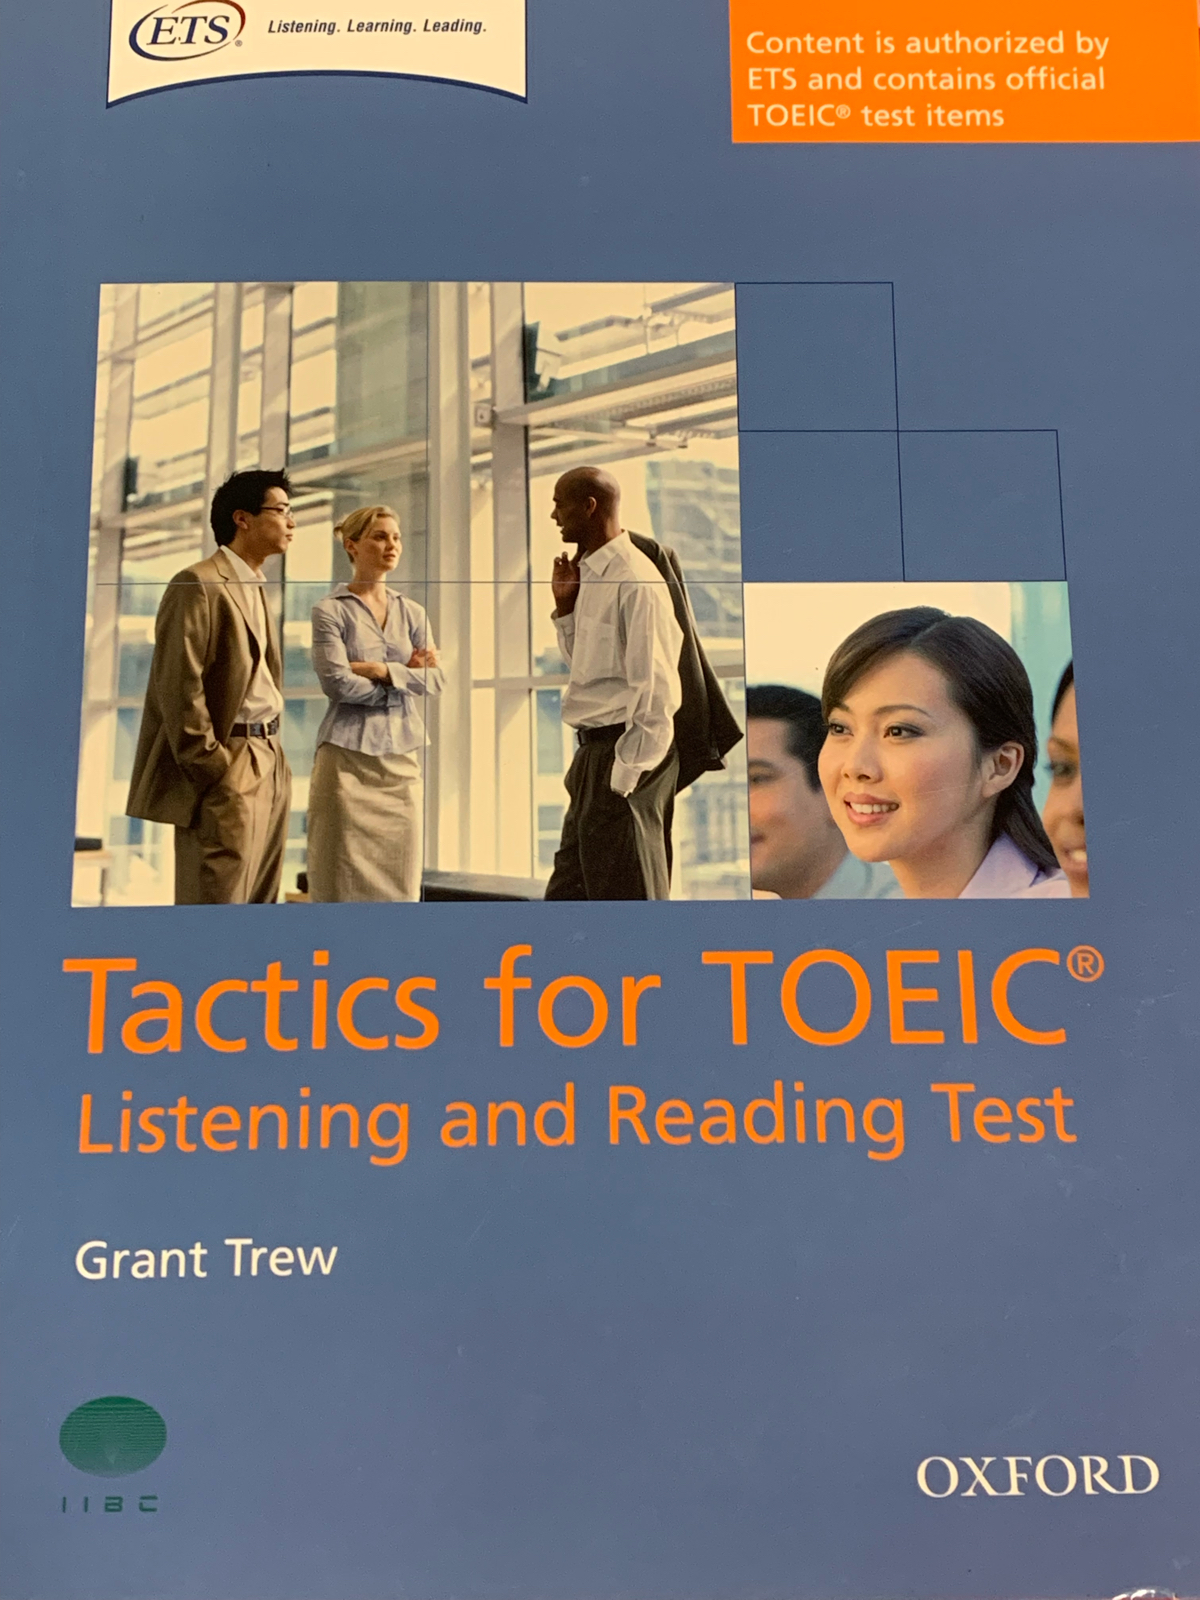 Tactics for TOIEC, listening and reading test... - 1